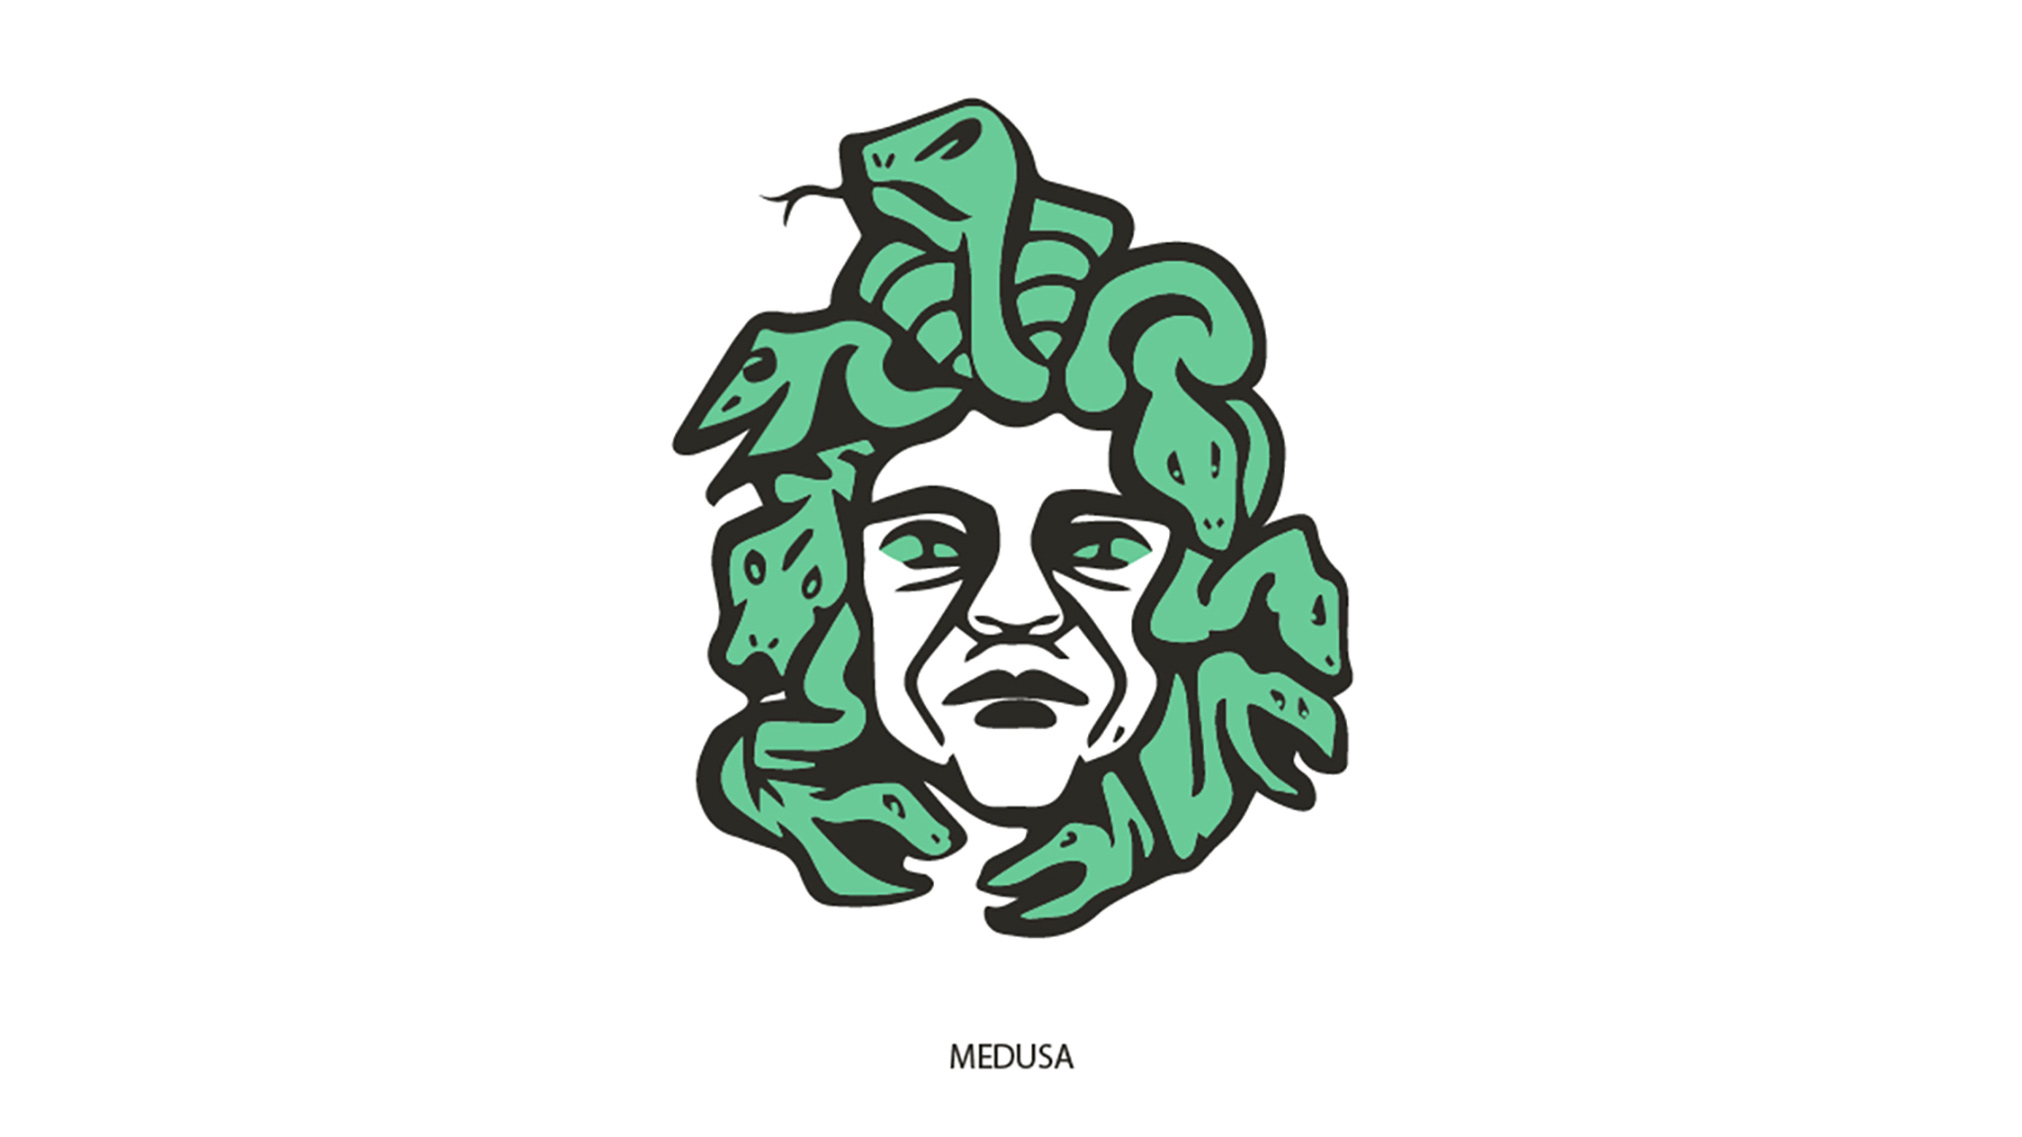 This project involved making a symbol based on Medusa. This project involved mind mapping, lots of sketch ideas, and different colour combinations in order to find the perfect symbol. The end result is a stern looking Medusa in black and green.